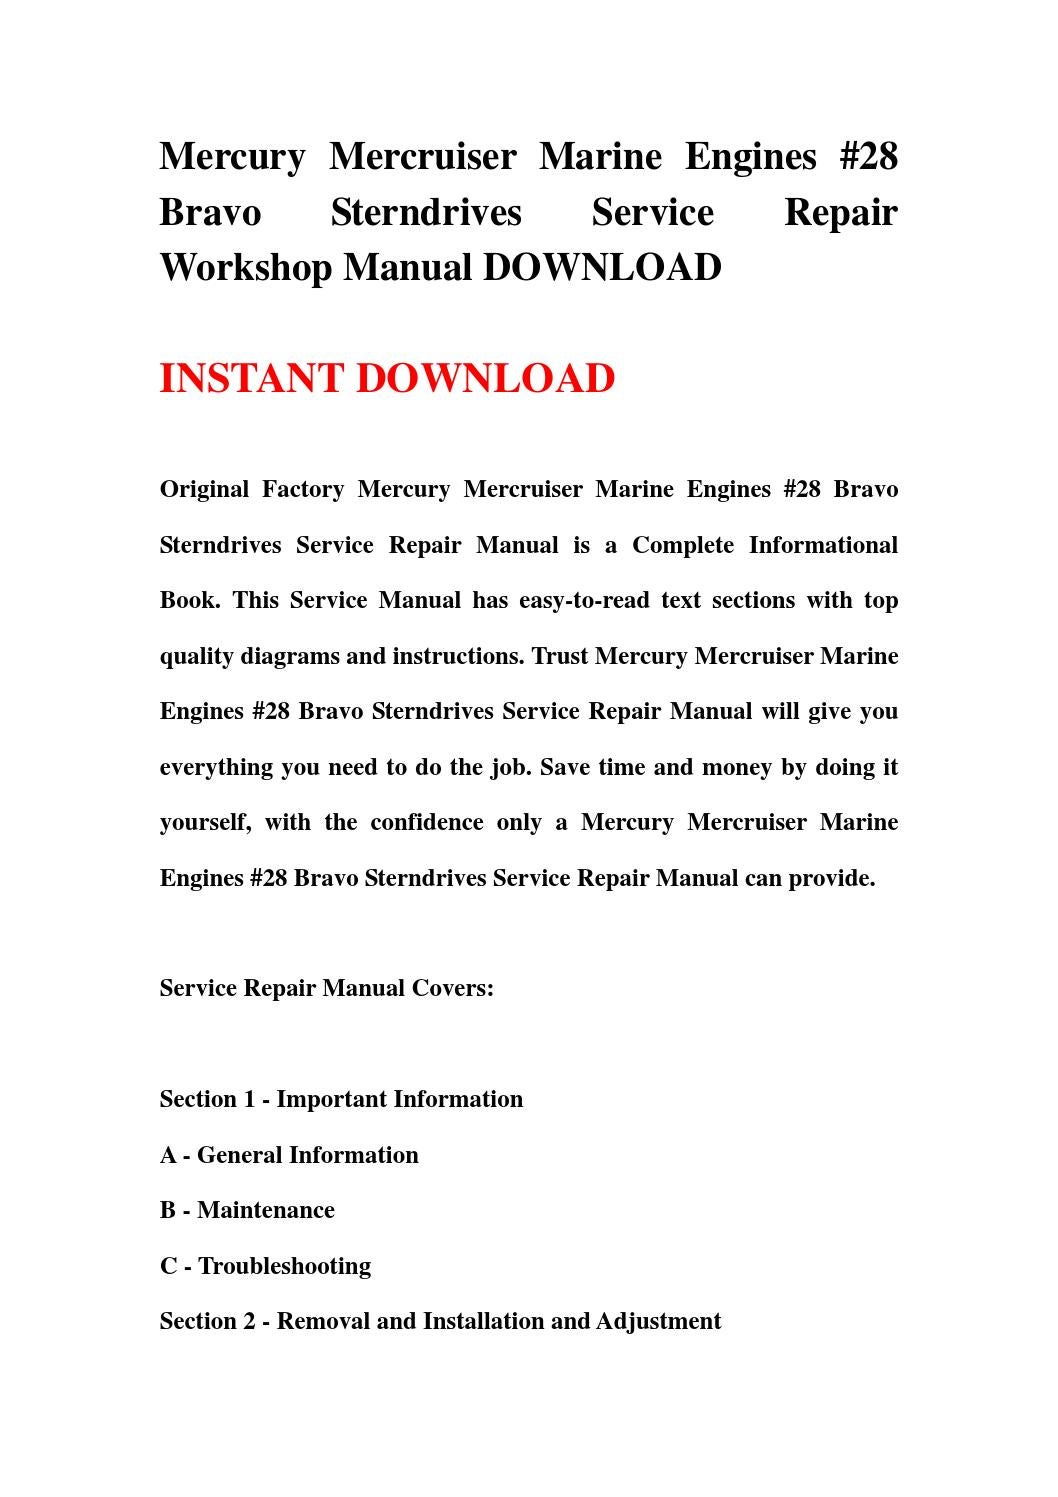 mercruiser bravo one service manual